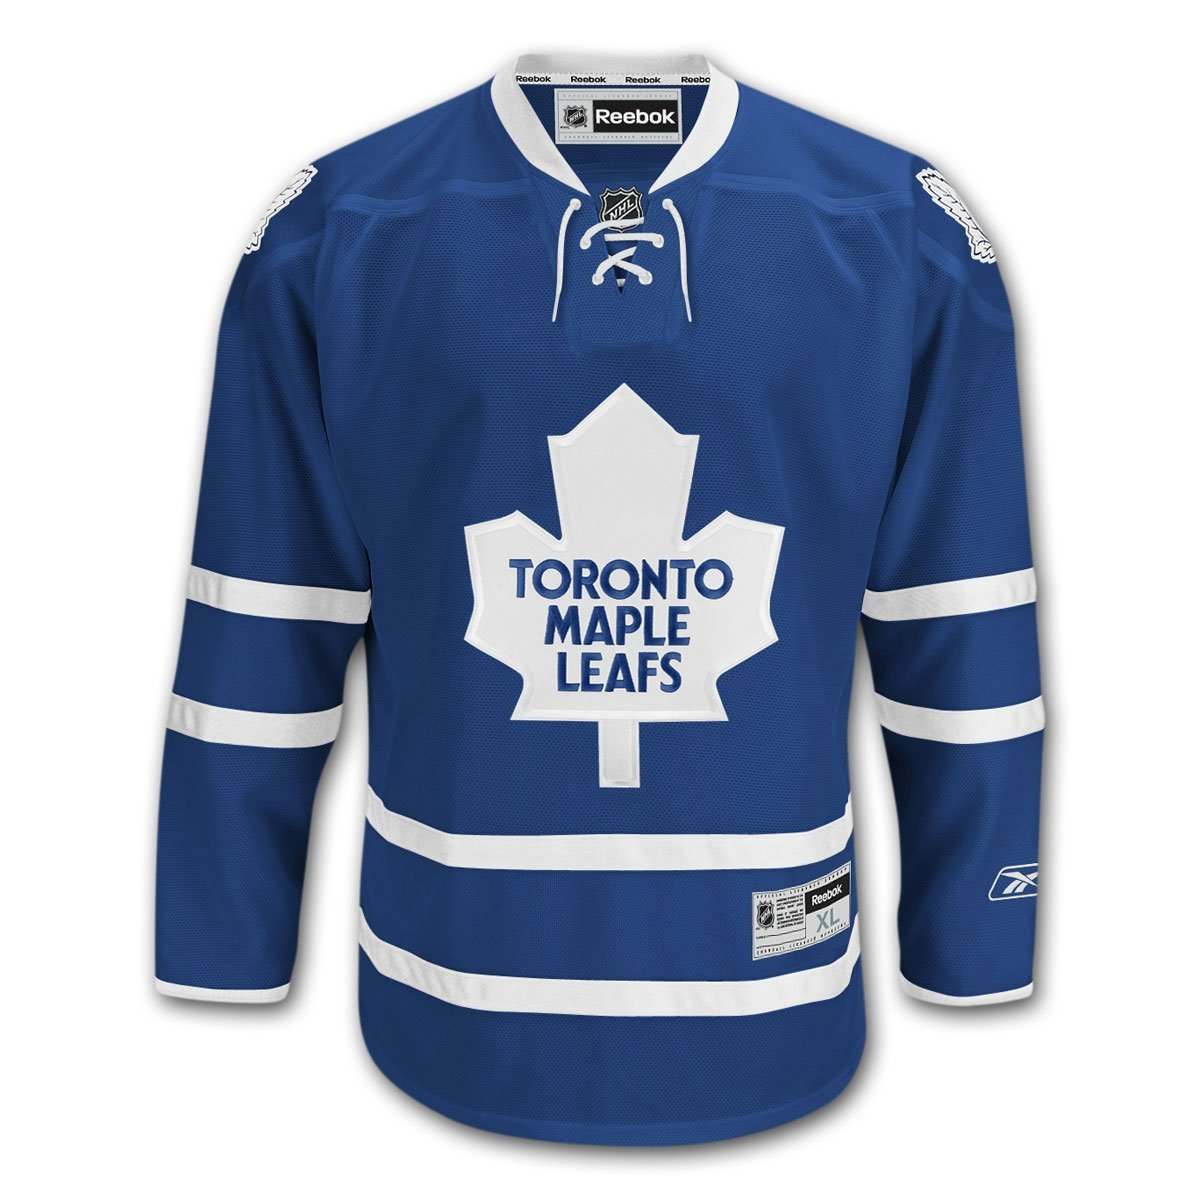 Men's Reebok Toronto Maple Leafs Premier Jersey Authentic Hockey